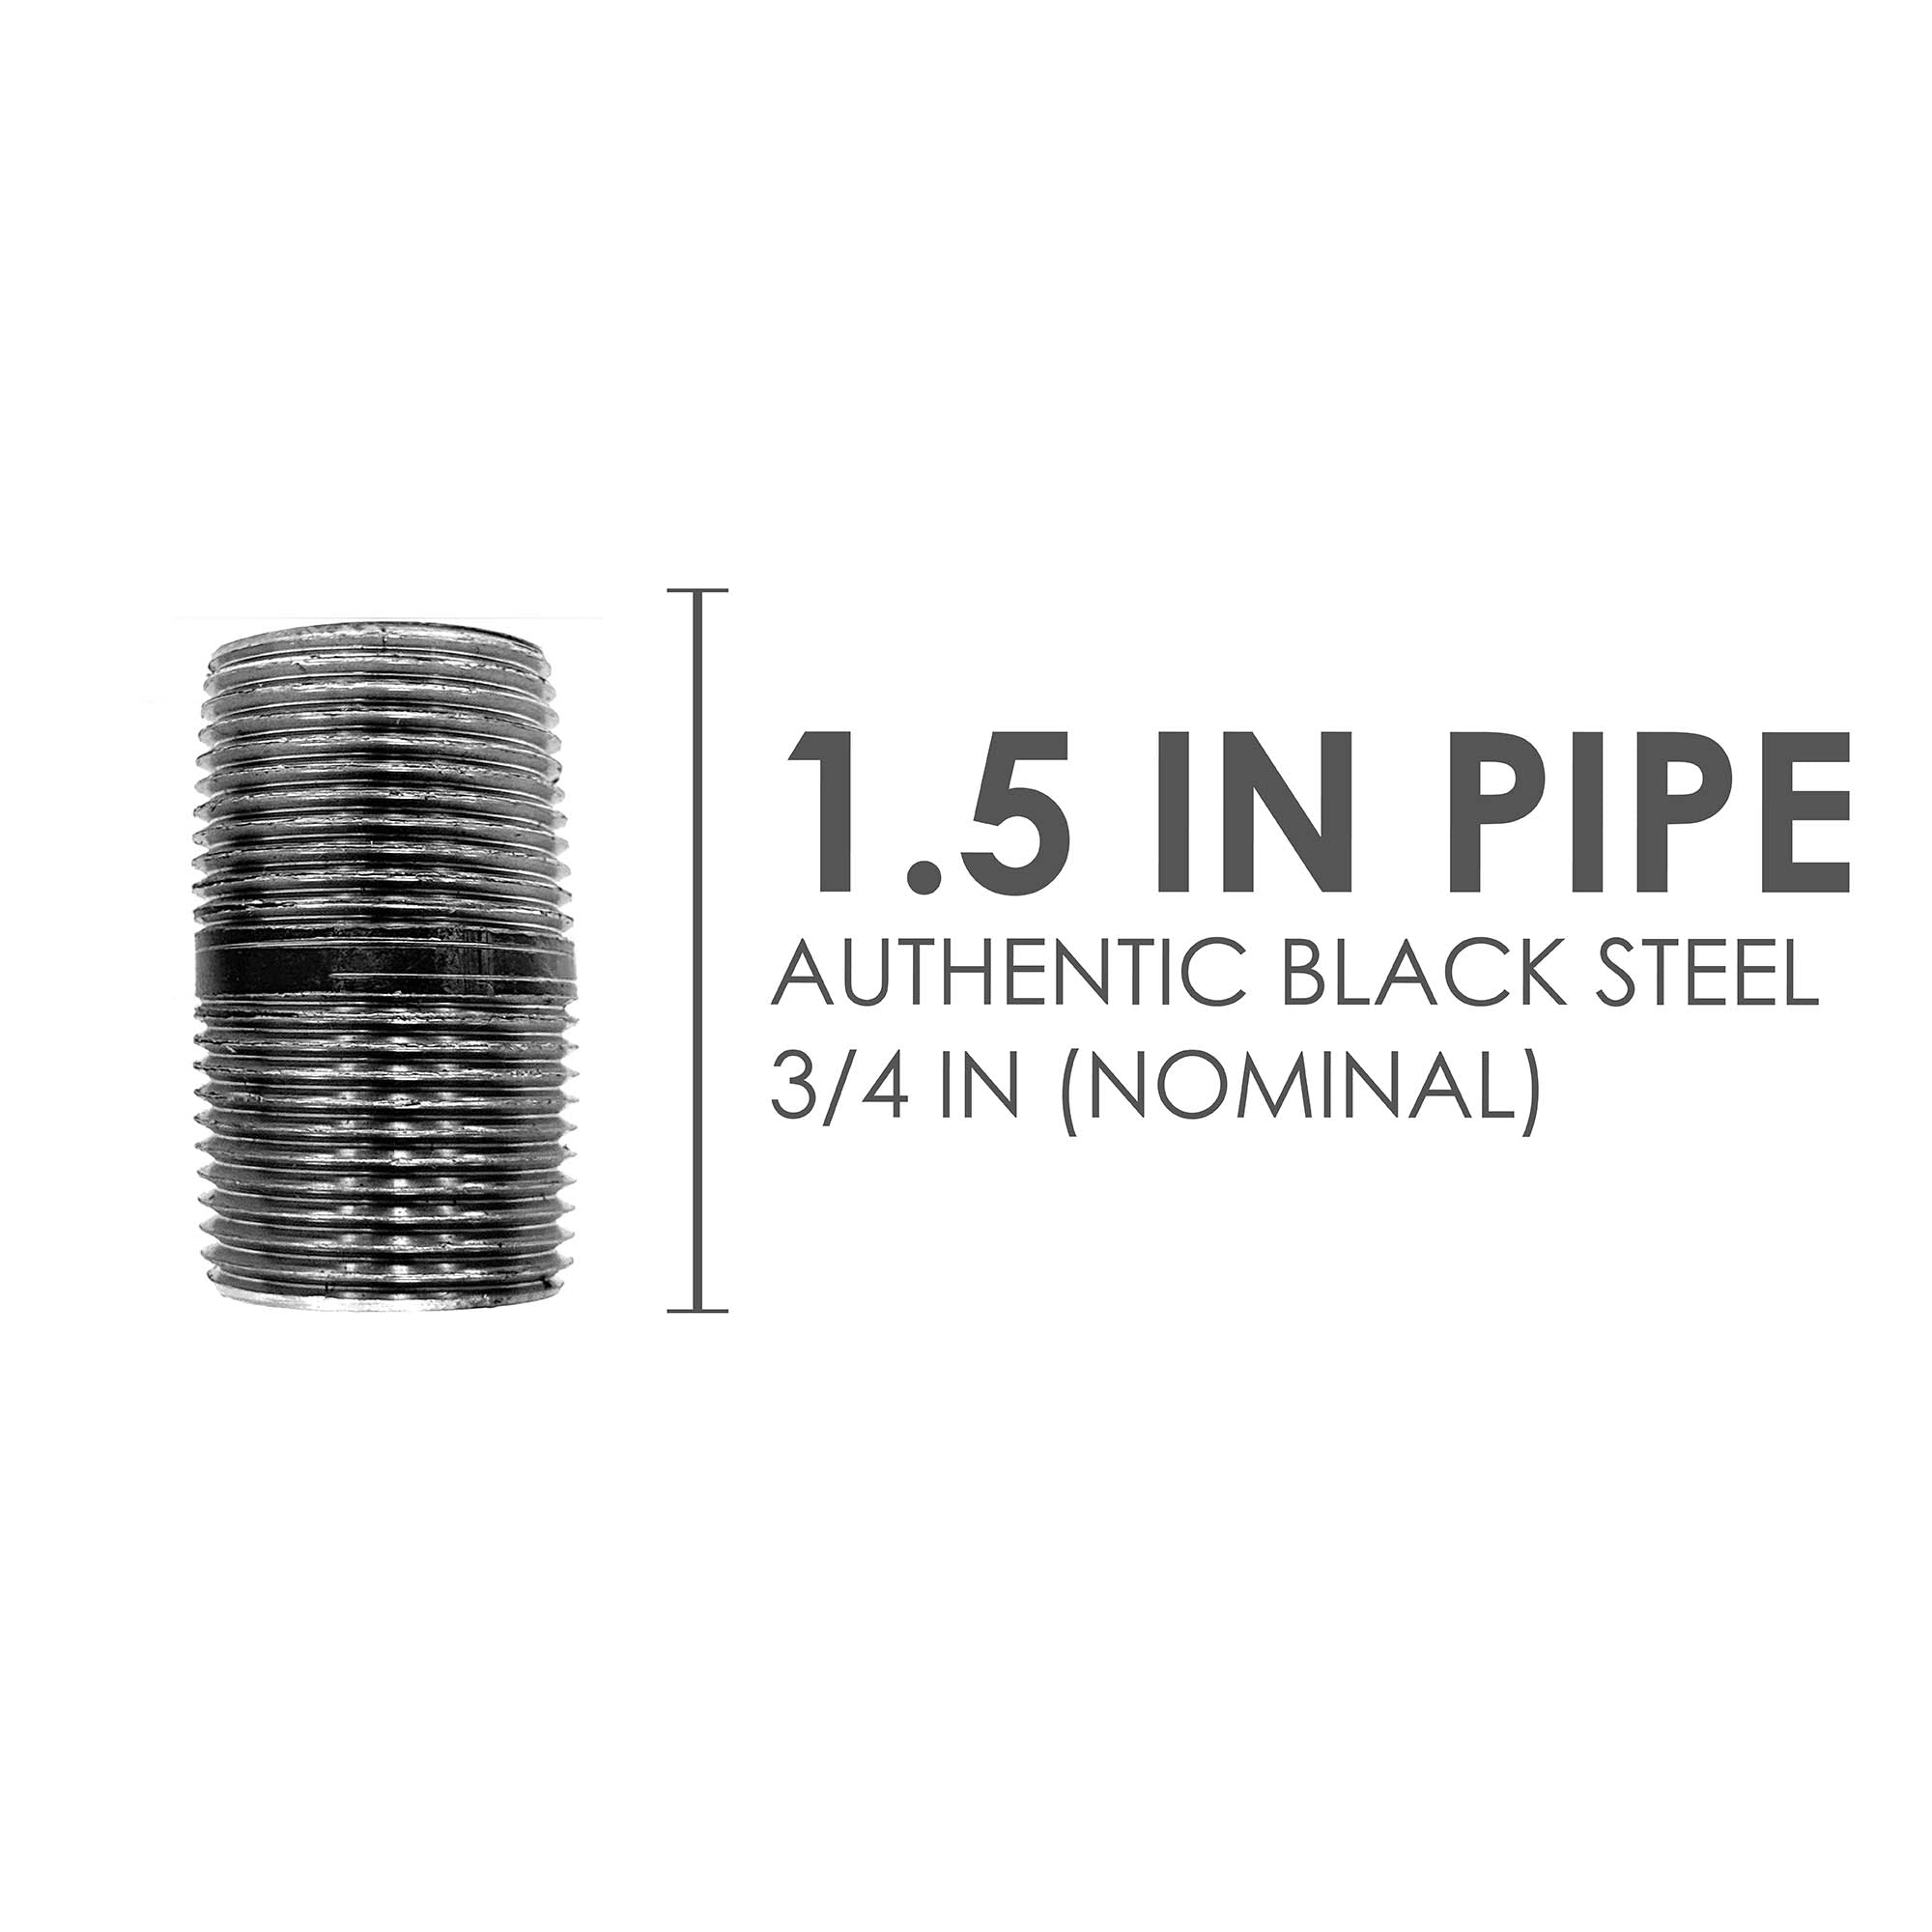 3/4 In X 1 1/2 In Black Pipe - Pipe Decor